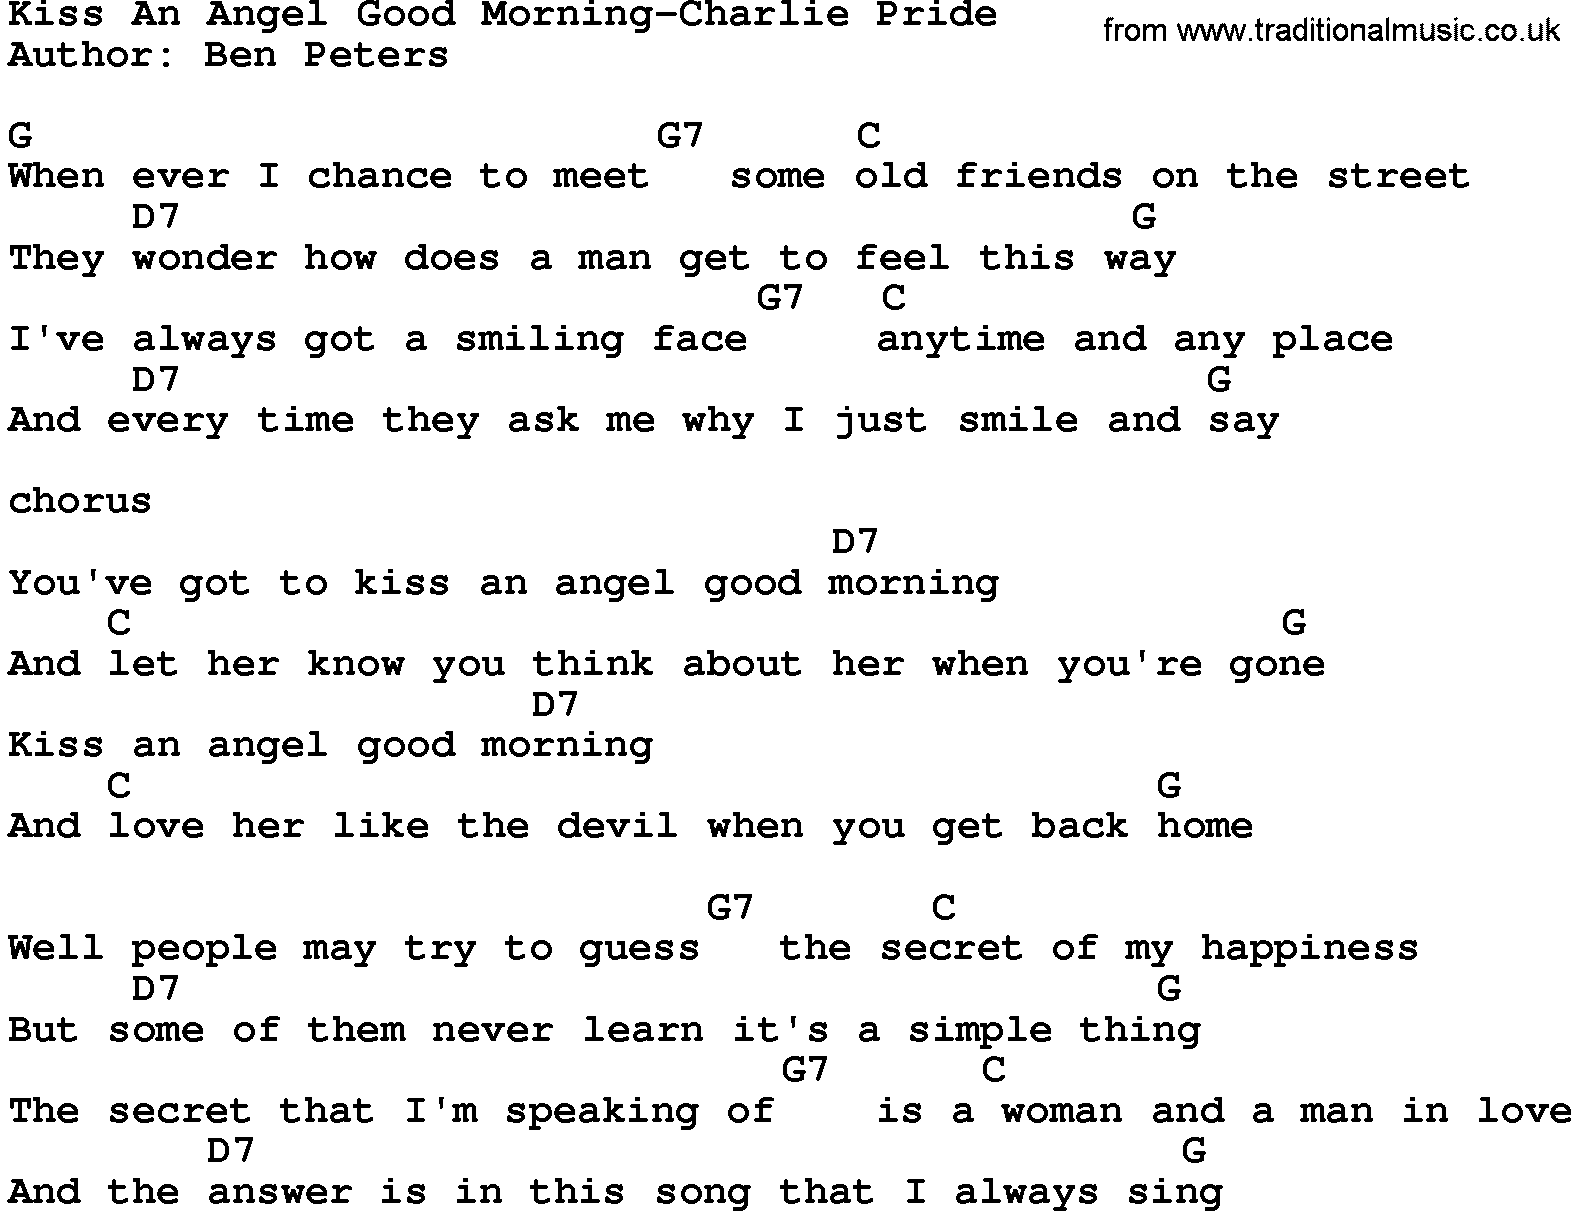 Kiss an angel good morning charlie pride guitar pinterest country music kiss an angel good morning charlie pride lyrics and chords hexwebz Images